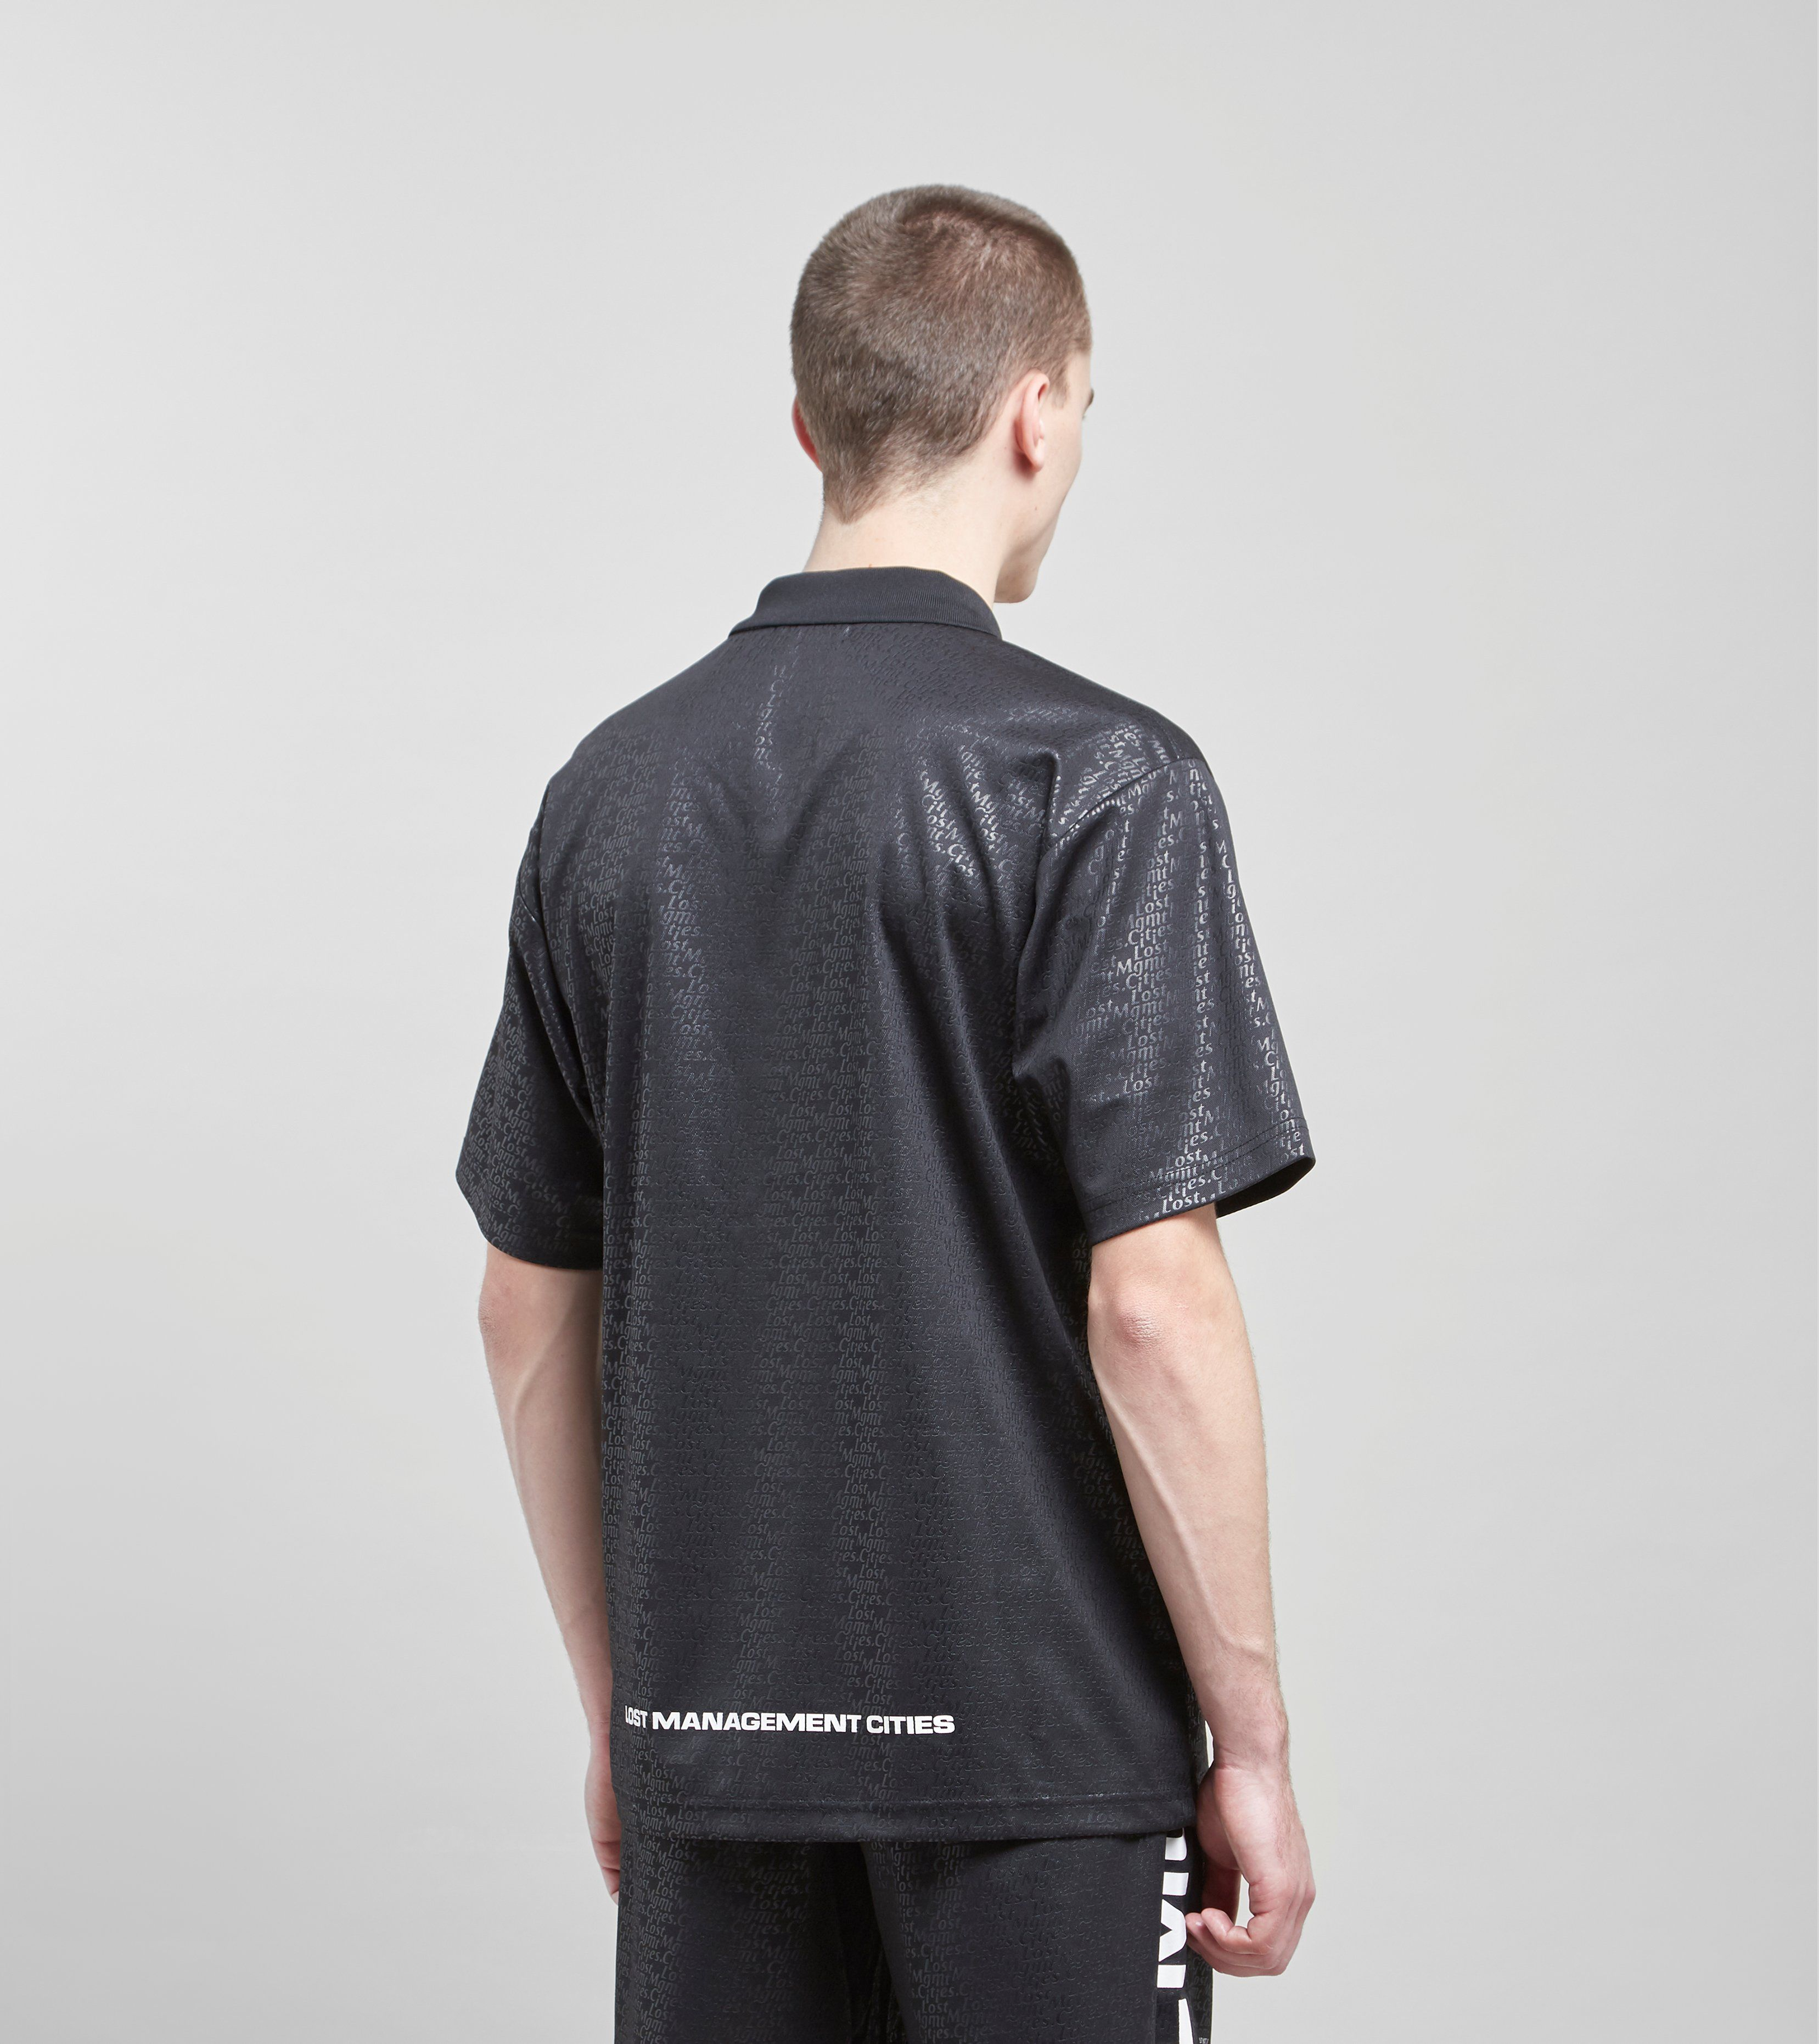 Lost Management Cities Soccer Jersey